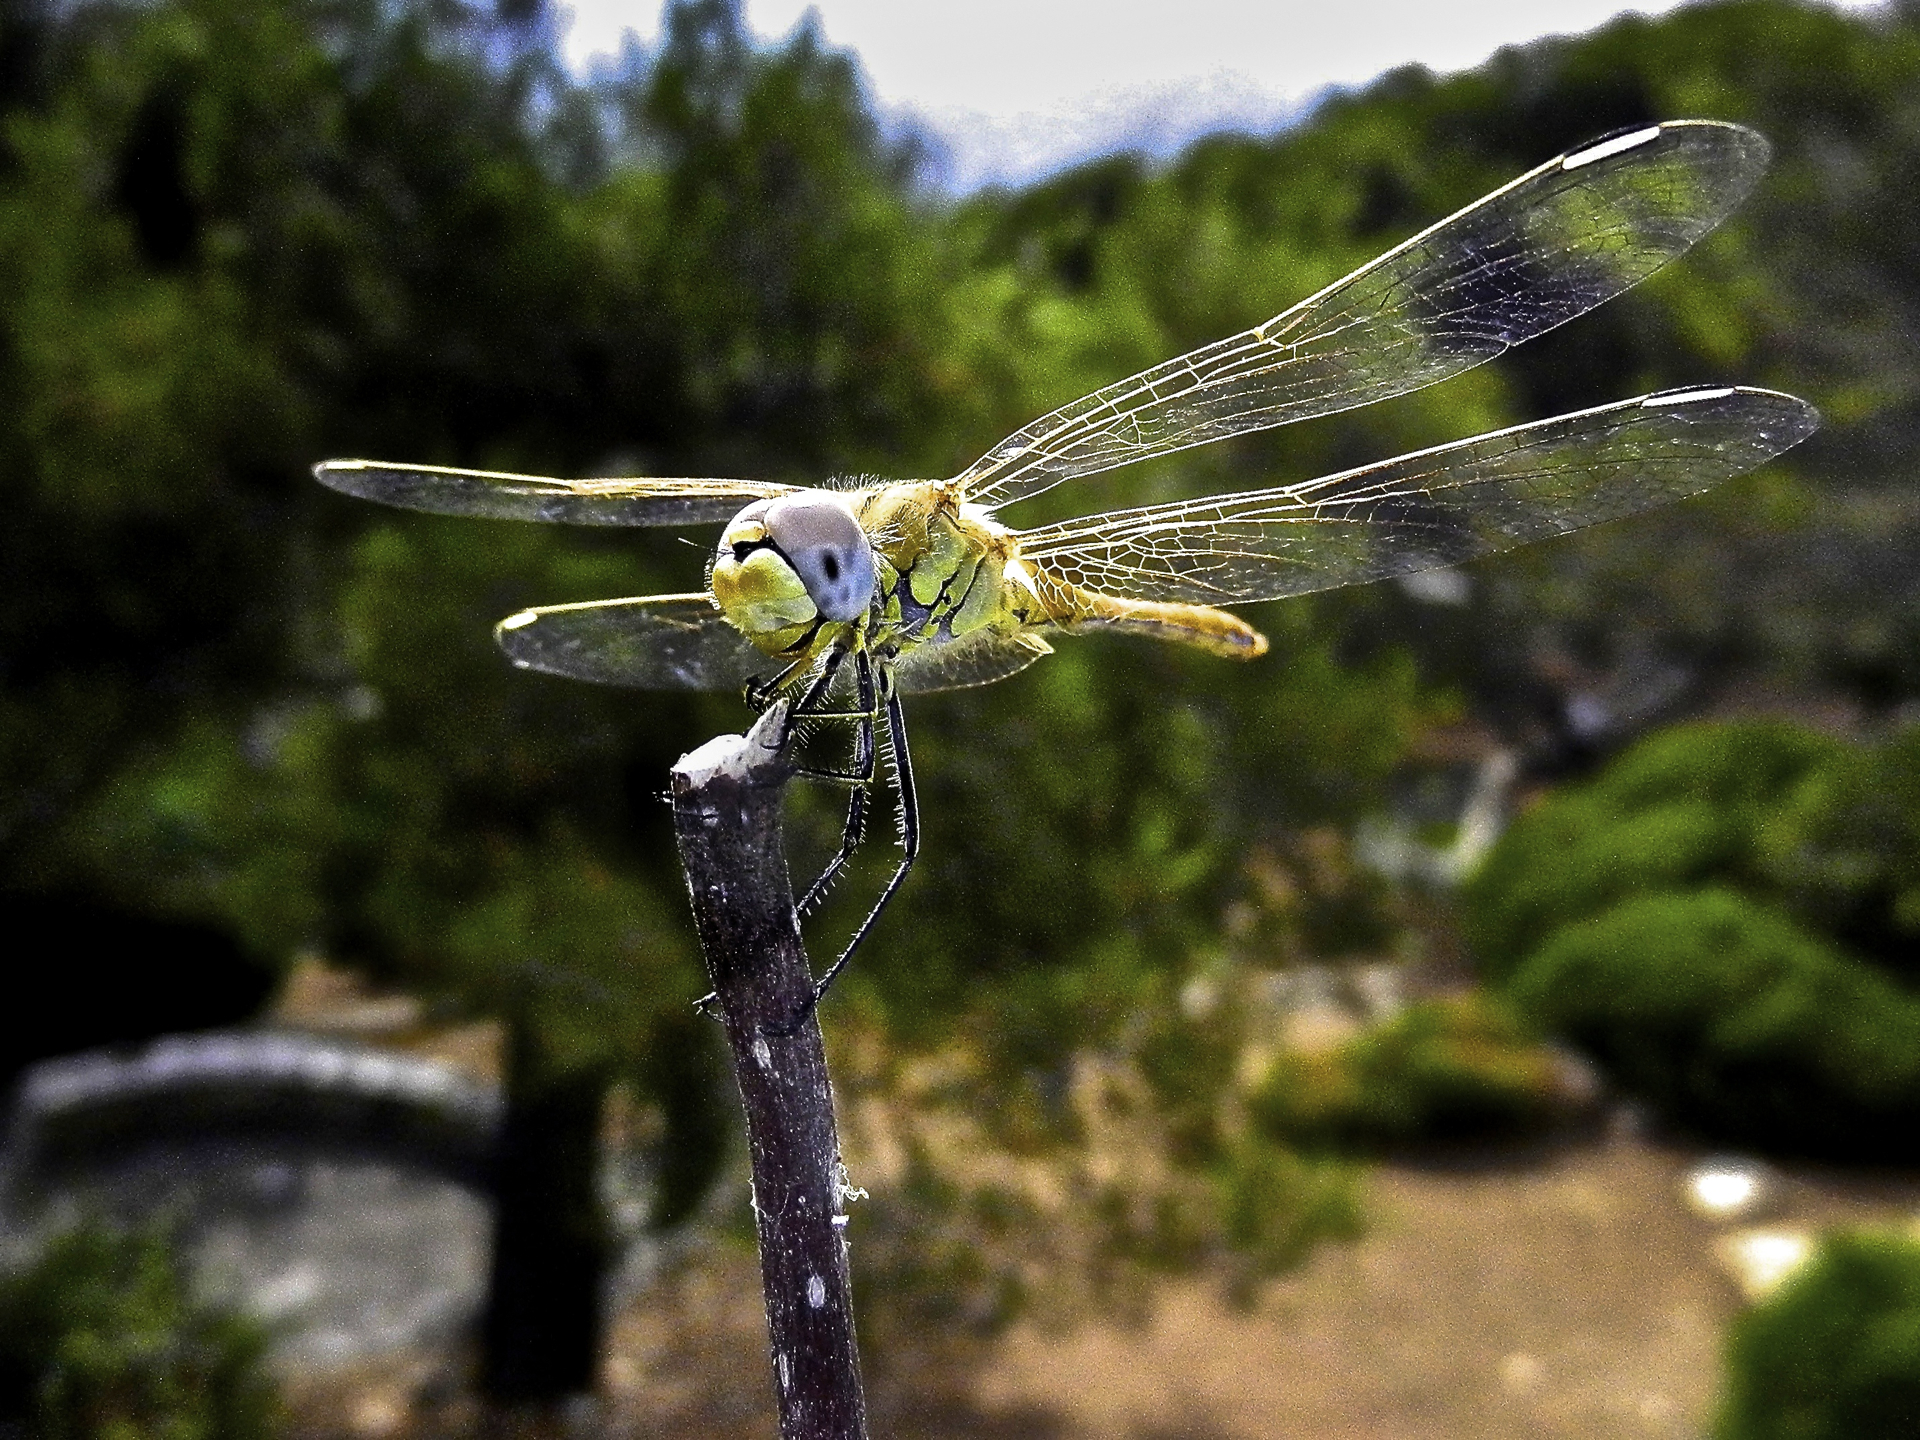 An Inch Of Dragonfly